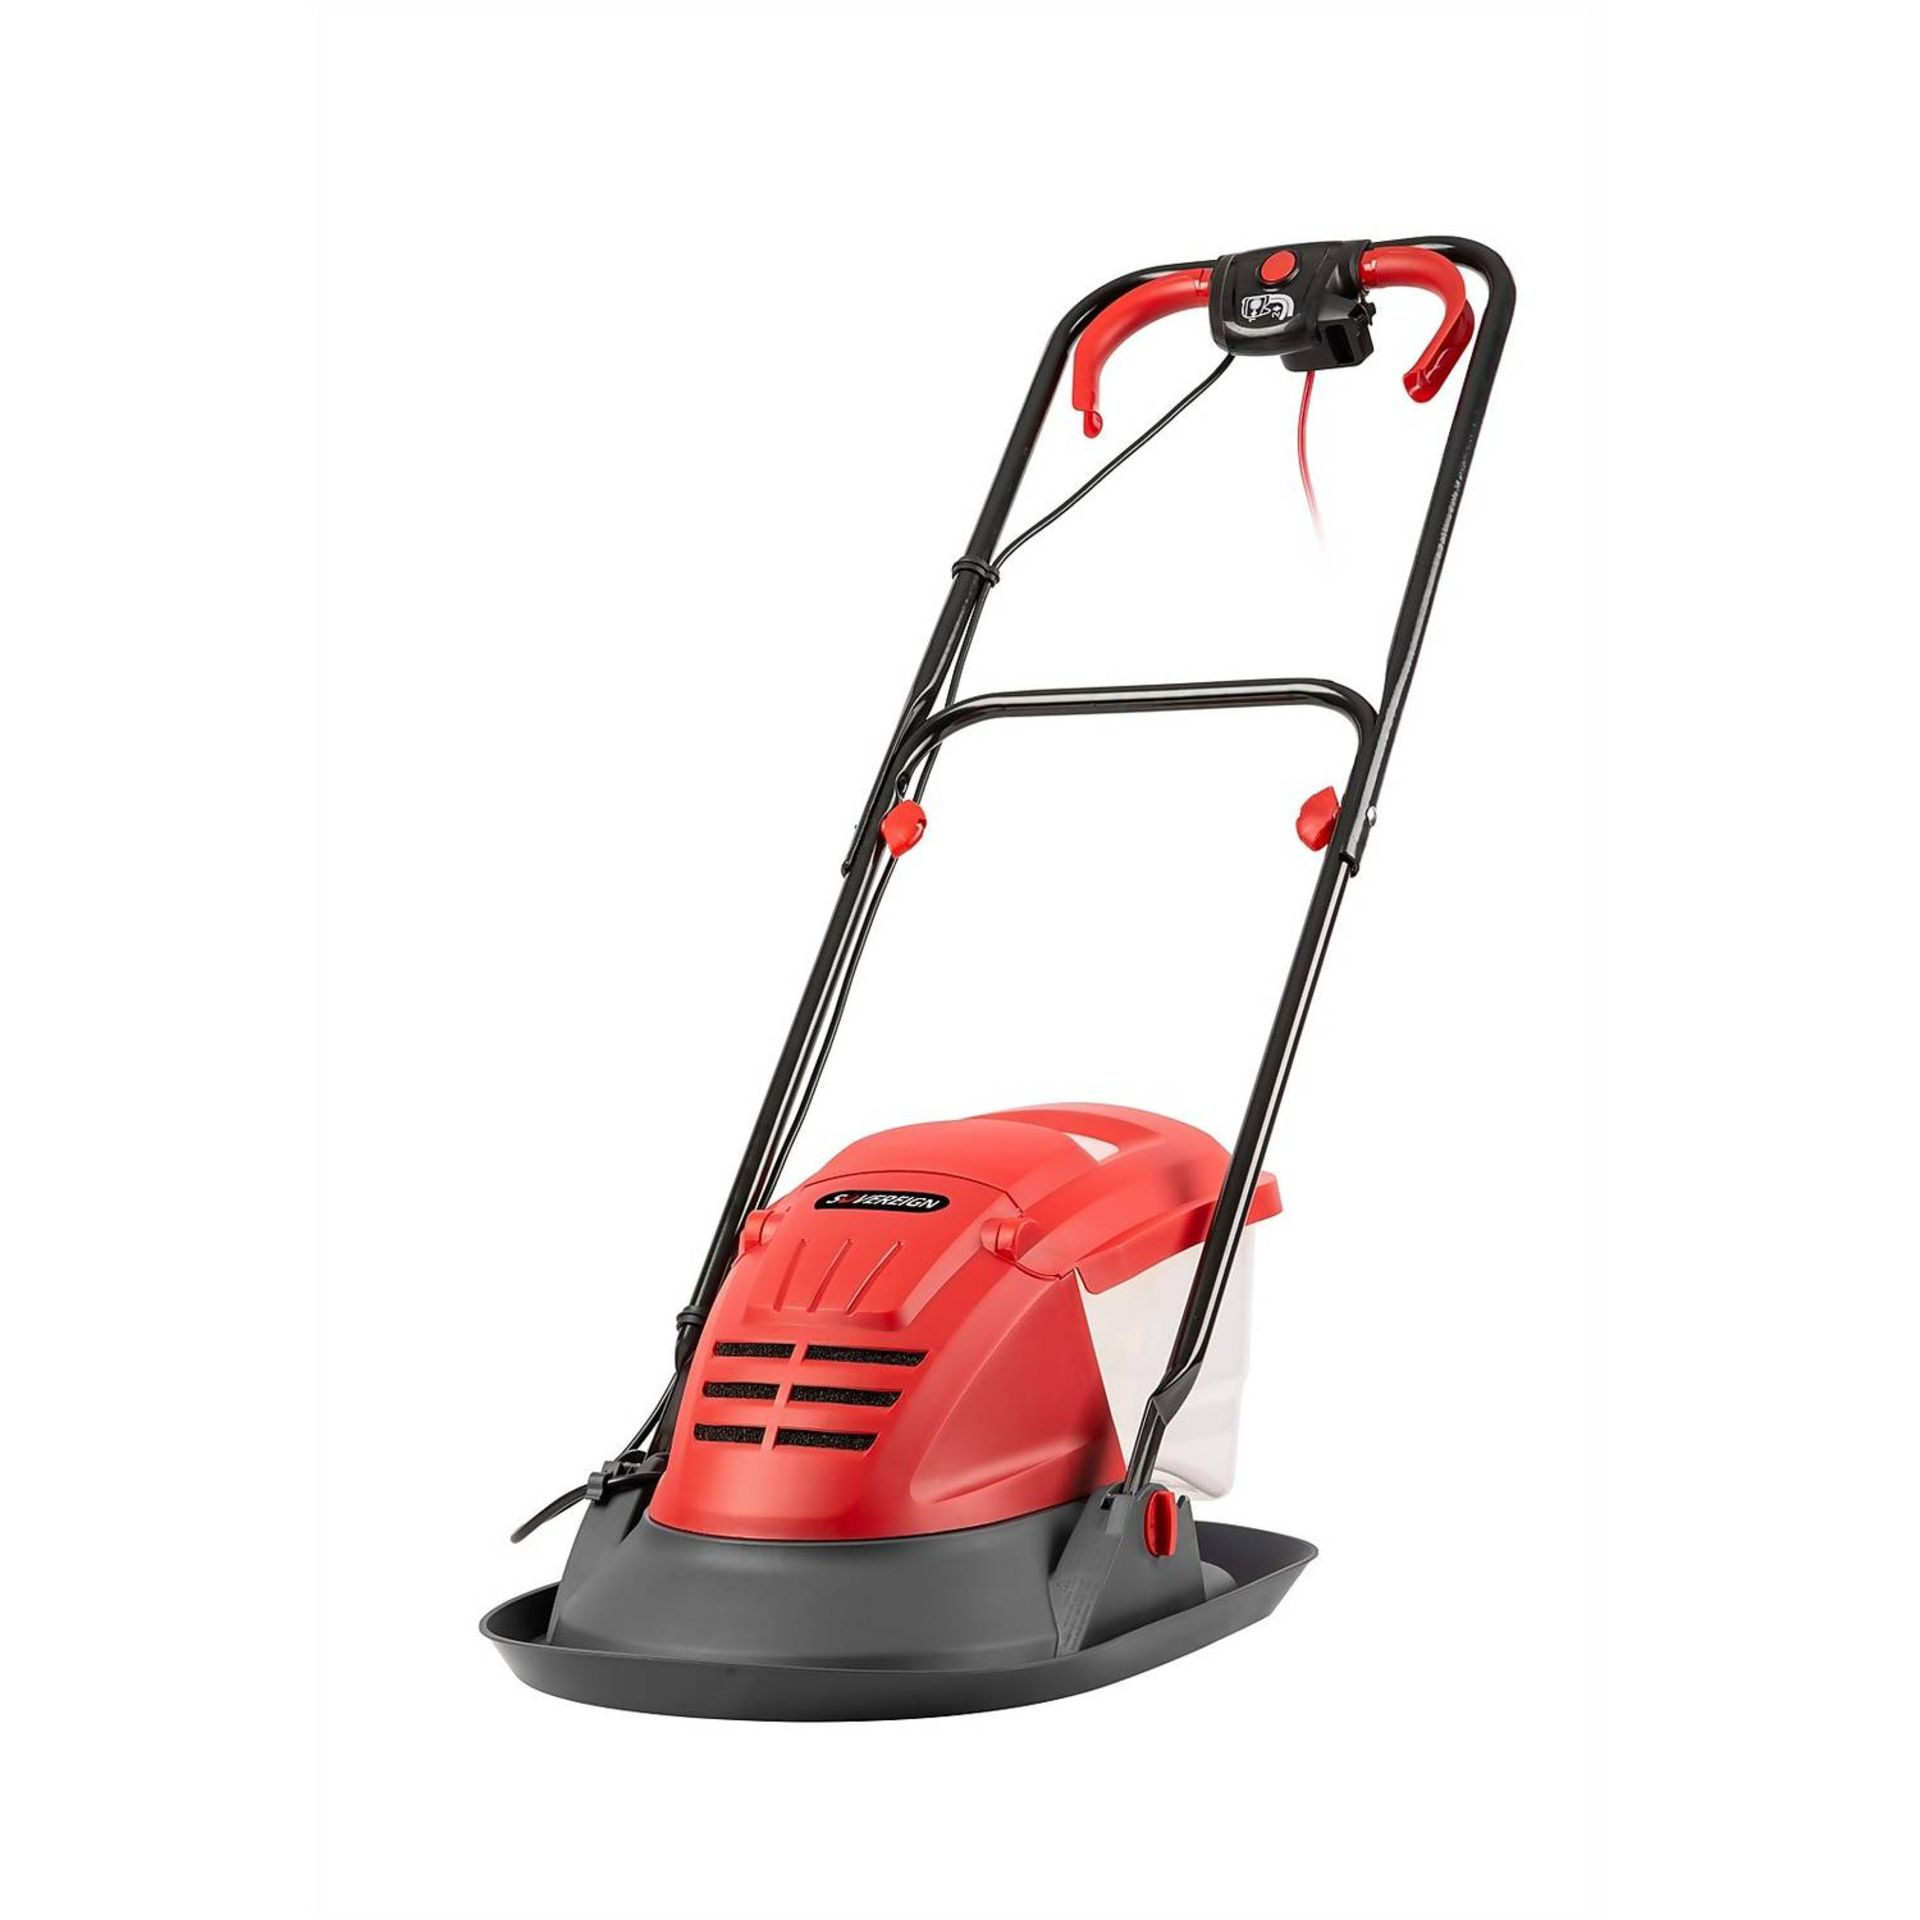 (P9) 2x Items. 1x Flymo EasiGlide 360V Electric Hover Collect Lawnmower RRP £139. 1x Sovereign 29c - Image 2 of 4